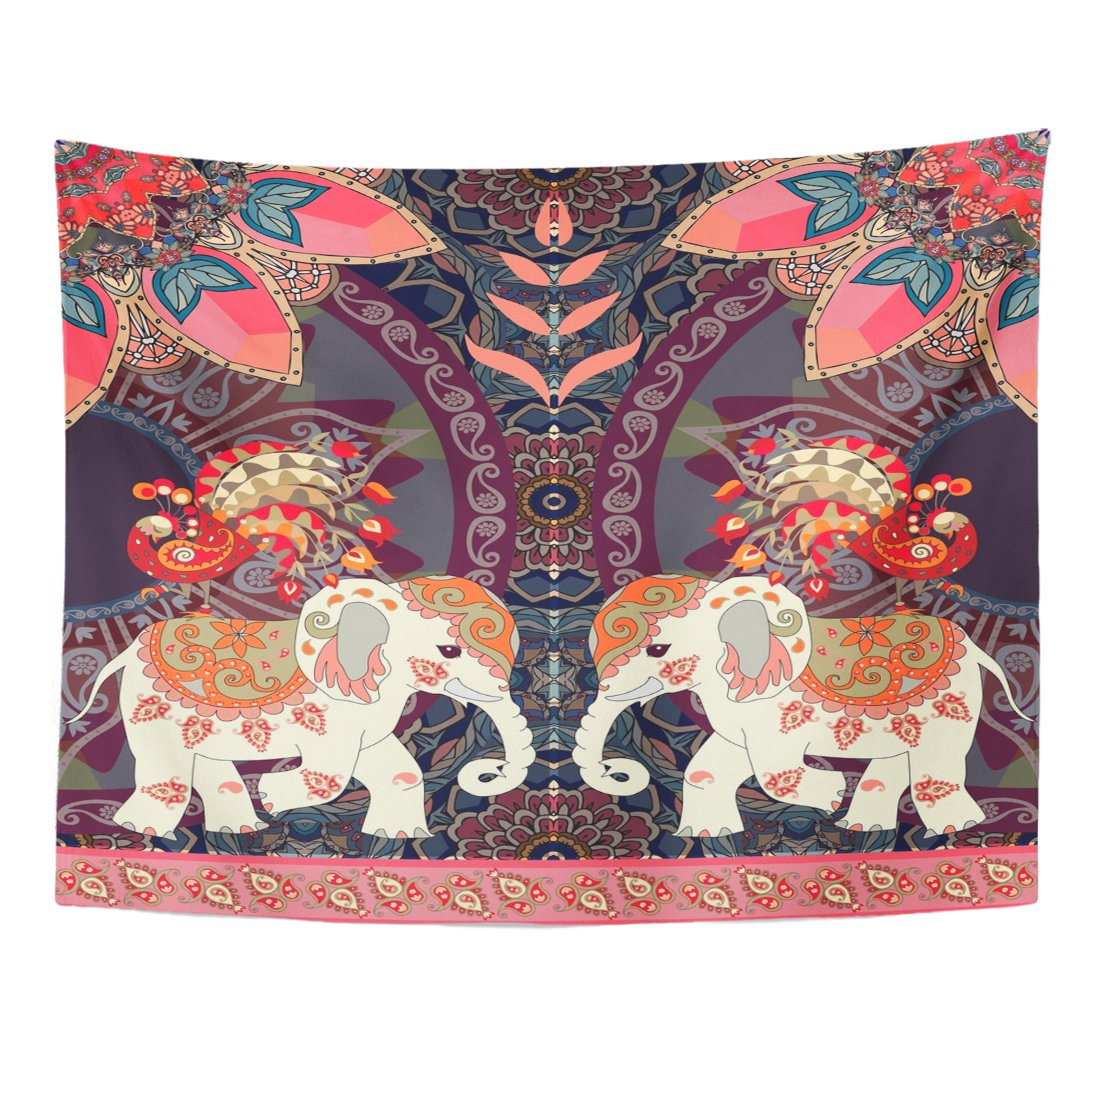 Breezat Tapestry Red Thailand Happy Birthday in Thai Indian Lovely Elephants Peacocks Sun Mandala and Paisley Border Home Decor Wall Hanging for Living Room Bedroom Dorm 60x80 Inches by Breezat